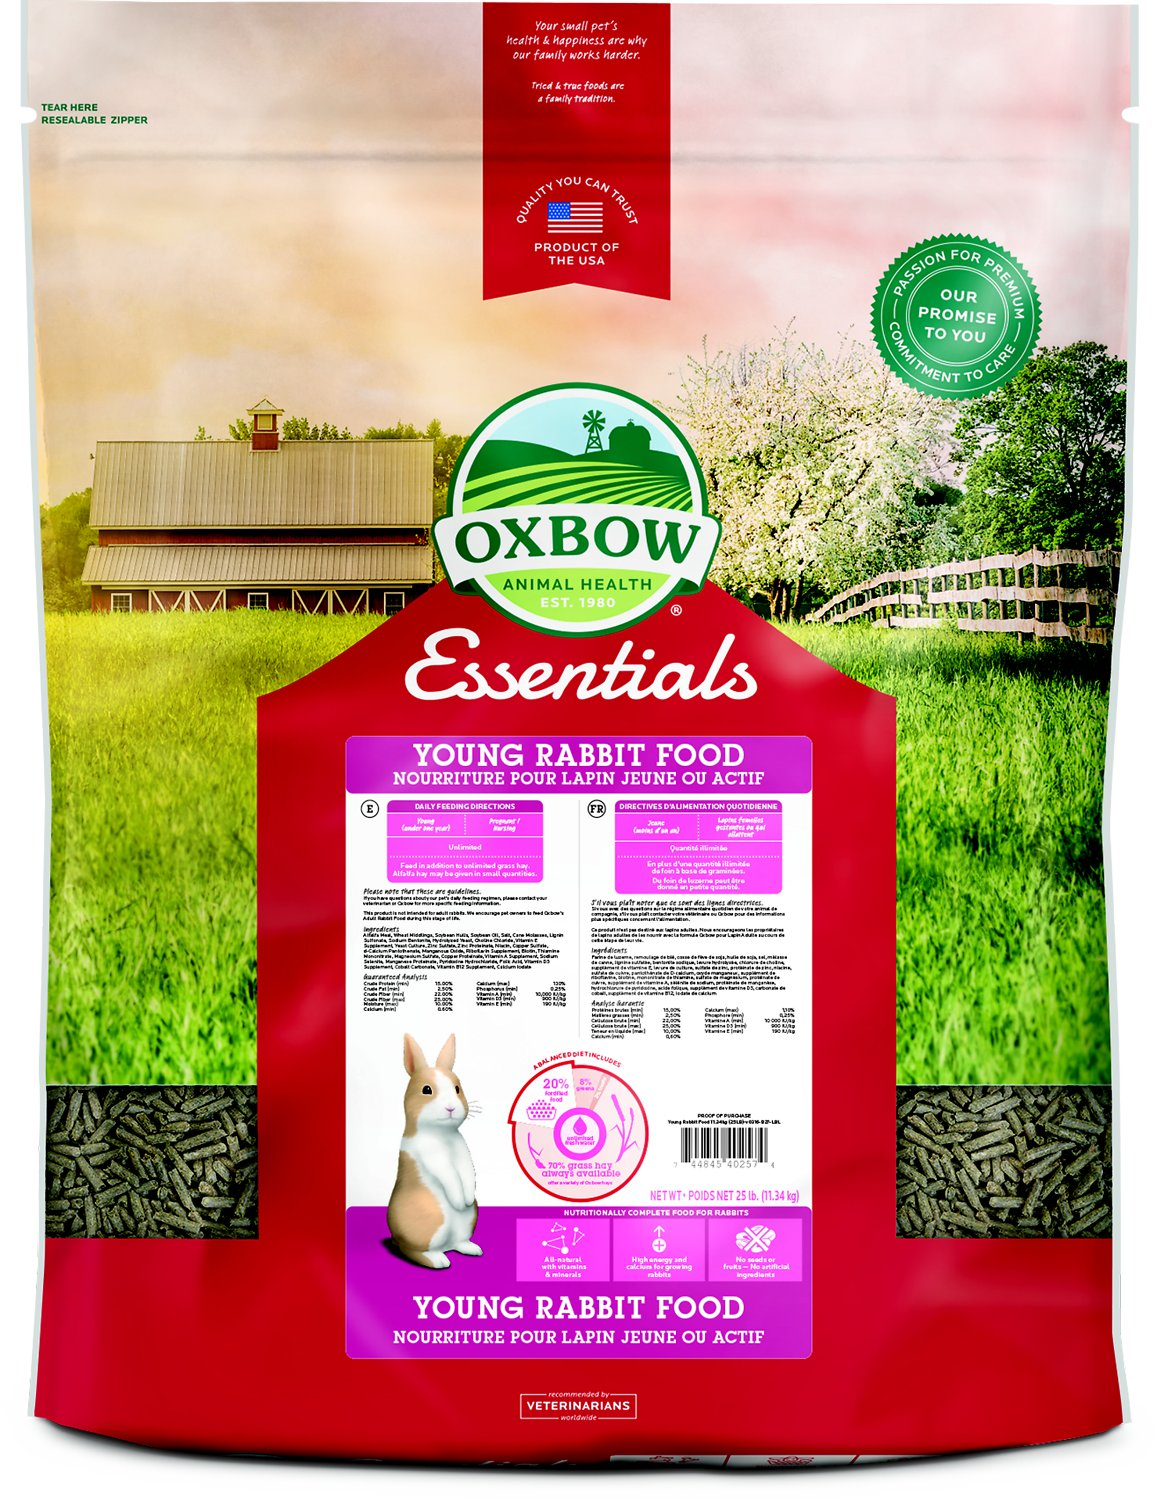 Oxbow Essentials Bunny Basics Young Rabbit Food Image